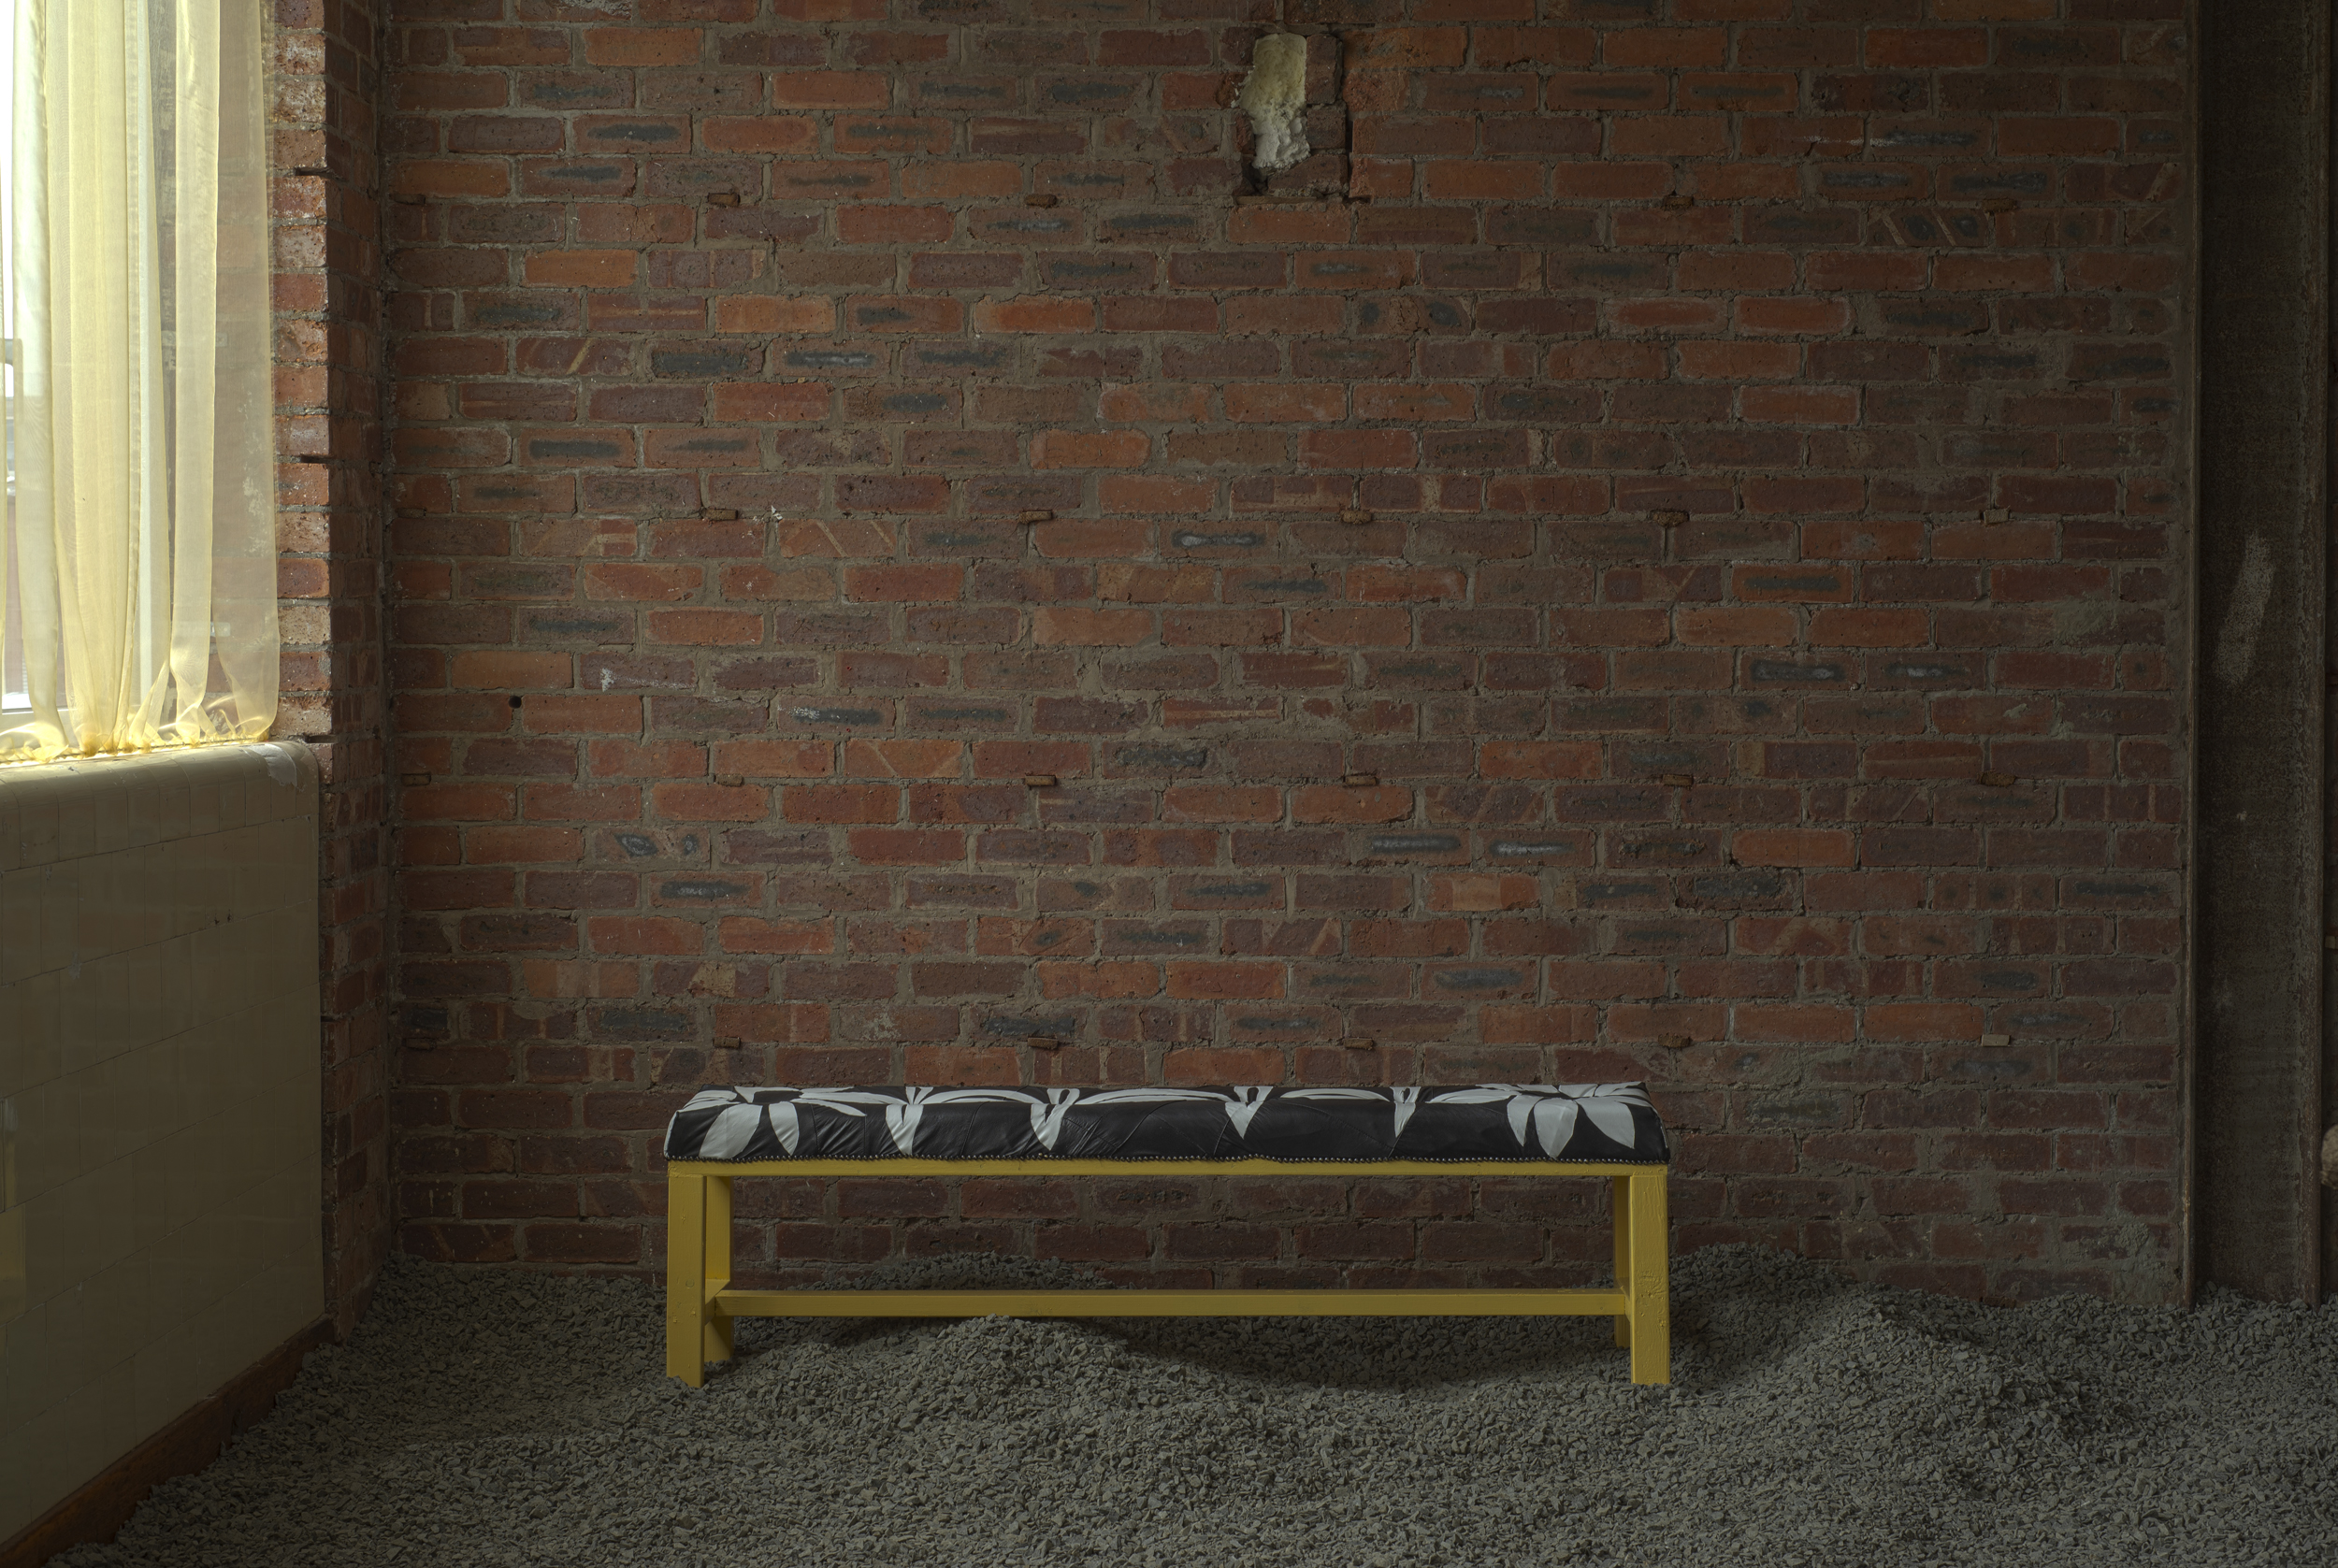 Lessons from the Leather Bench, Leather, Foam, Wood, Studs, Paint, 178x50x35cm, 2021